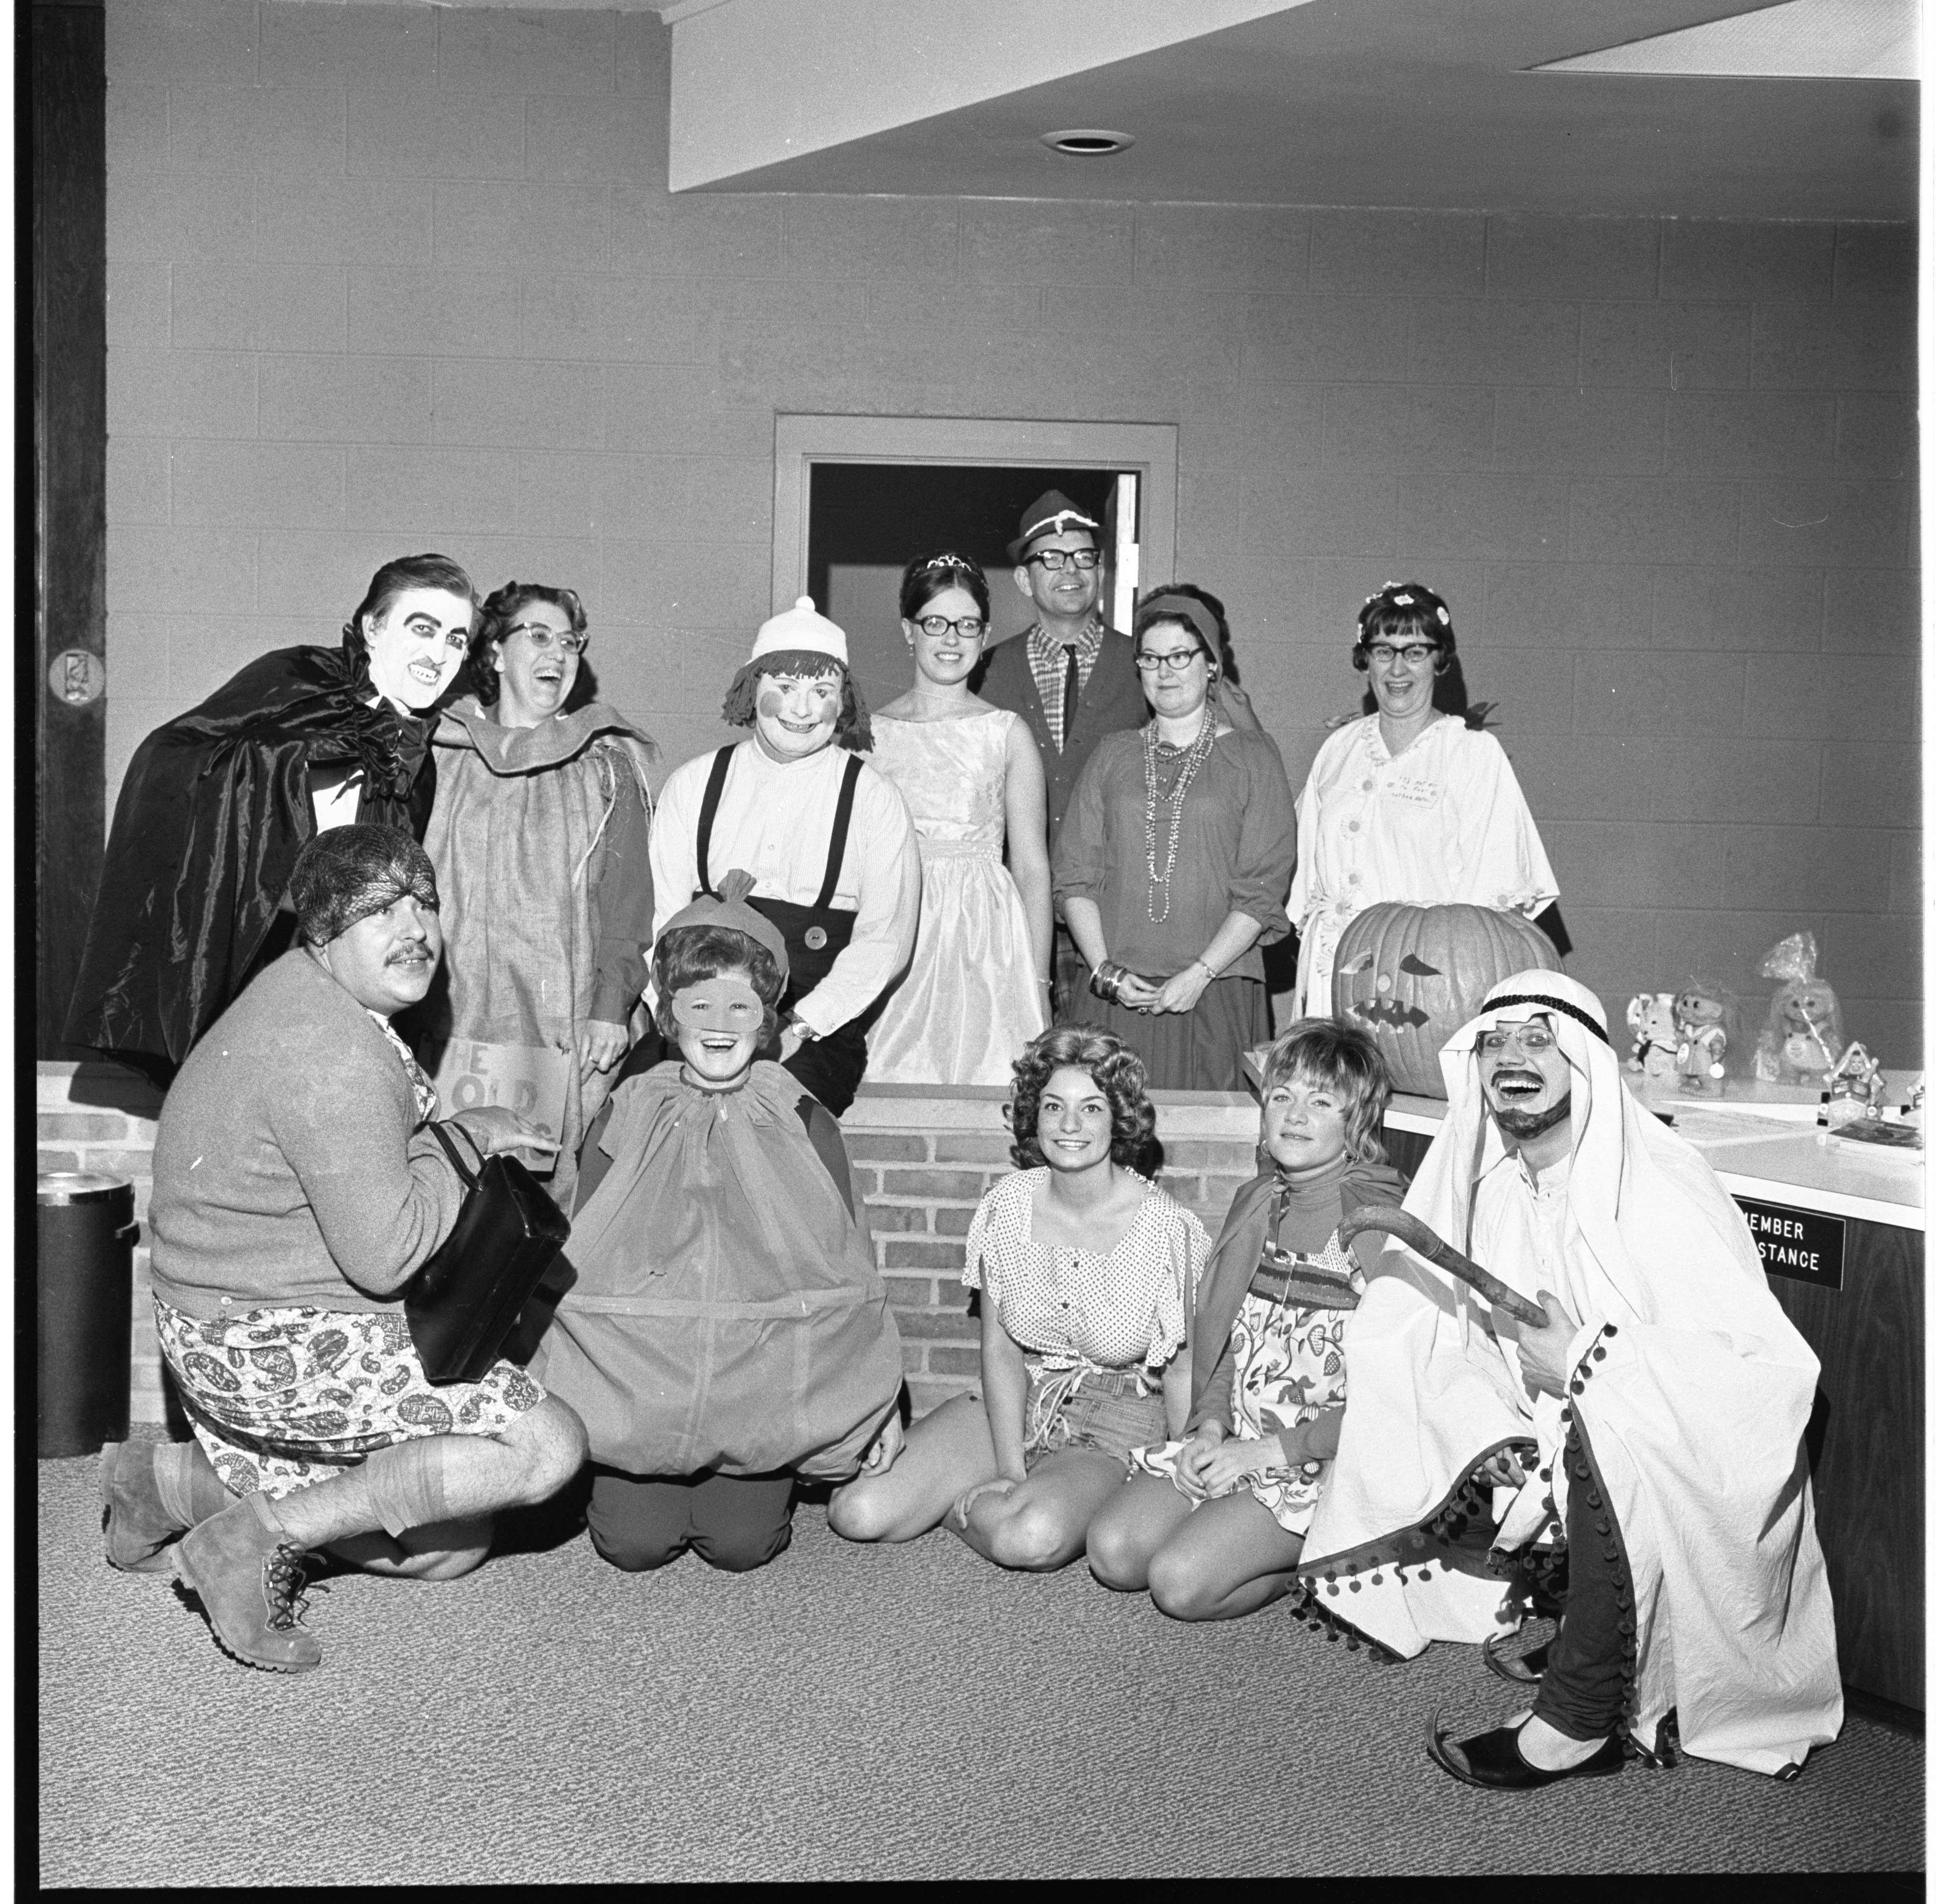 Ann Arbor Co-Op Credit Union Employees Dressed In Halloween Costumes - October 31, 1972 image